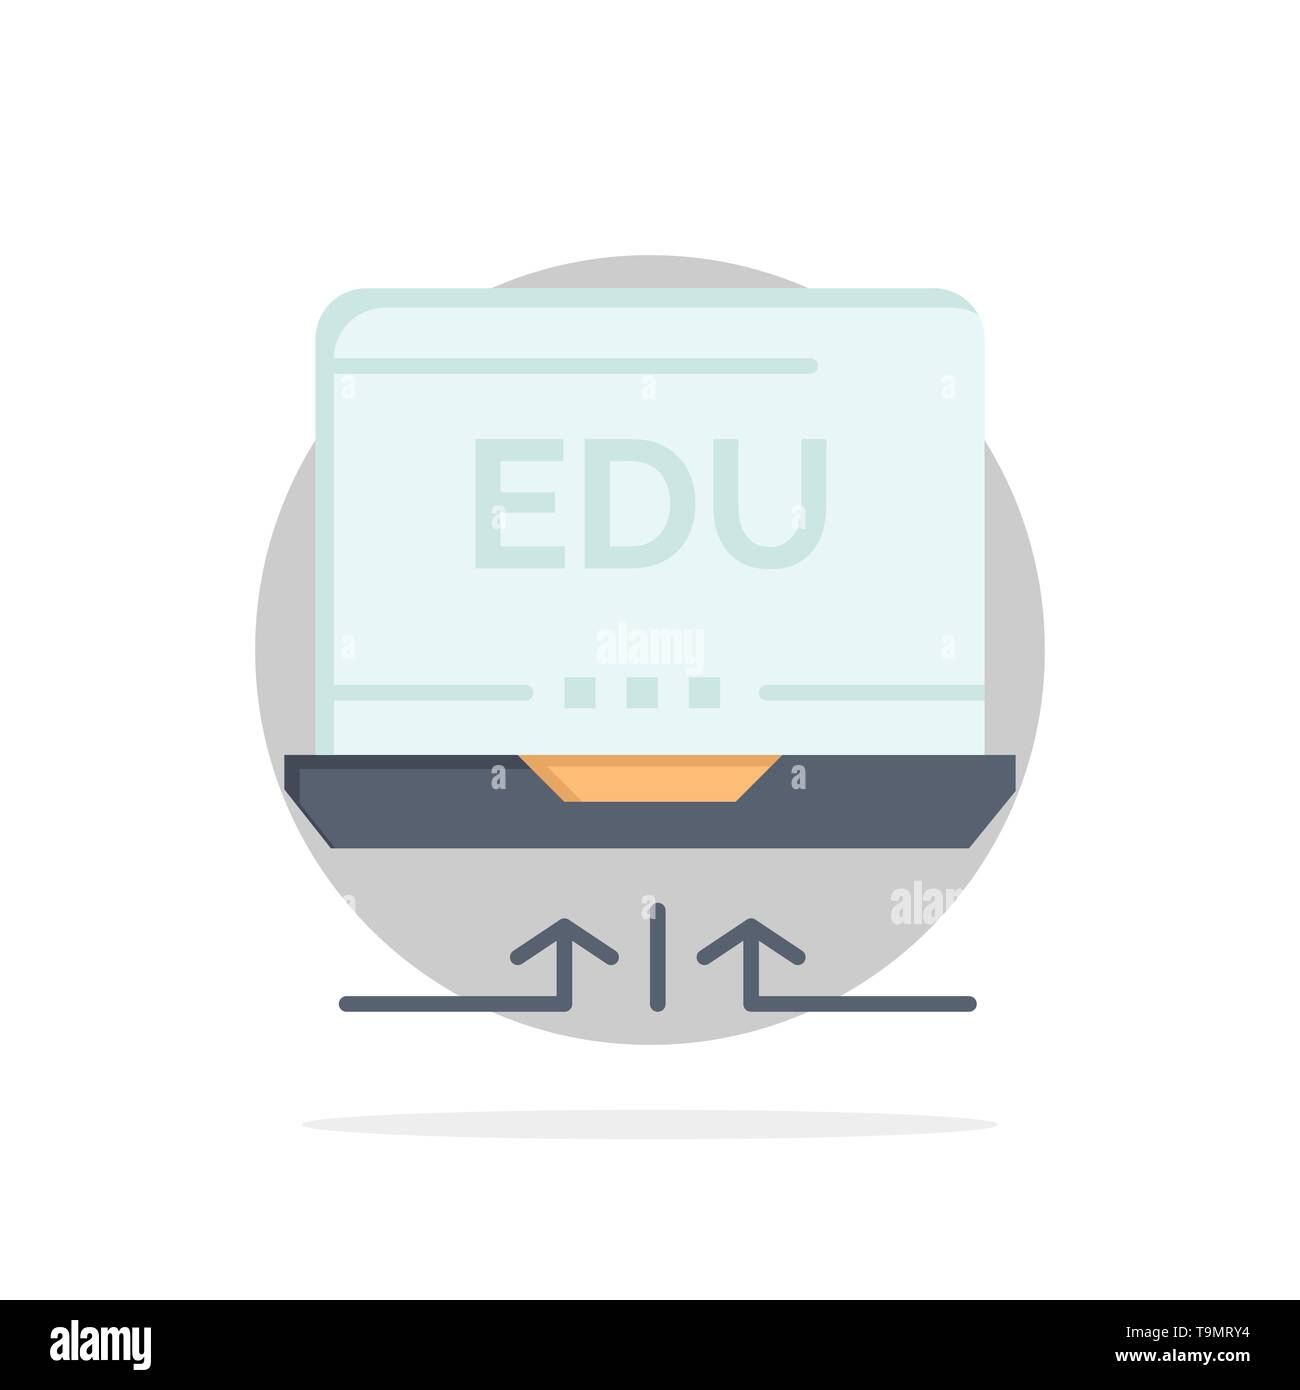 Laptop, Hardware, Arrow, Education Abstract Circle Background Flat color Icon - Stock Image